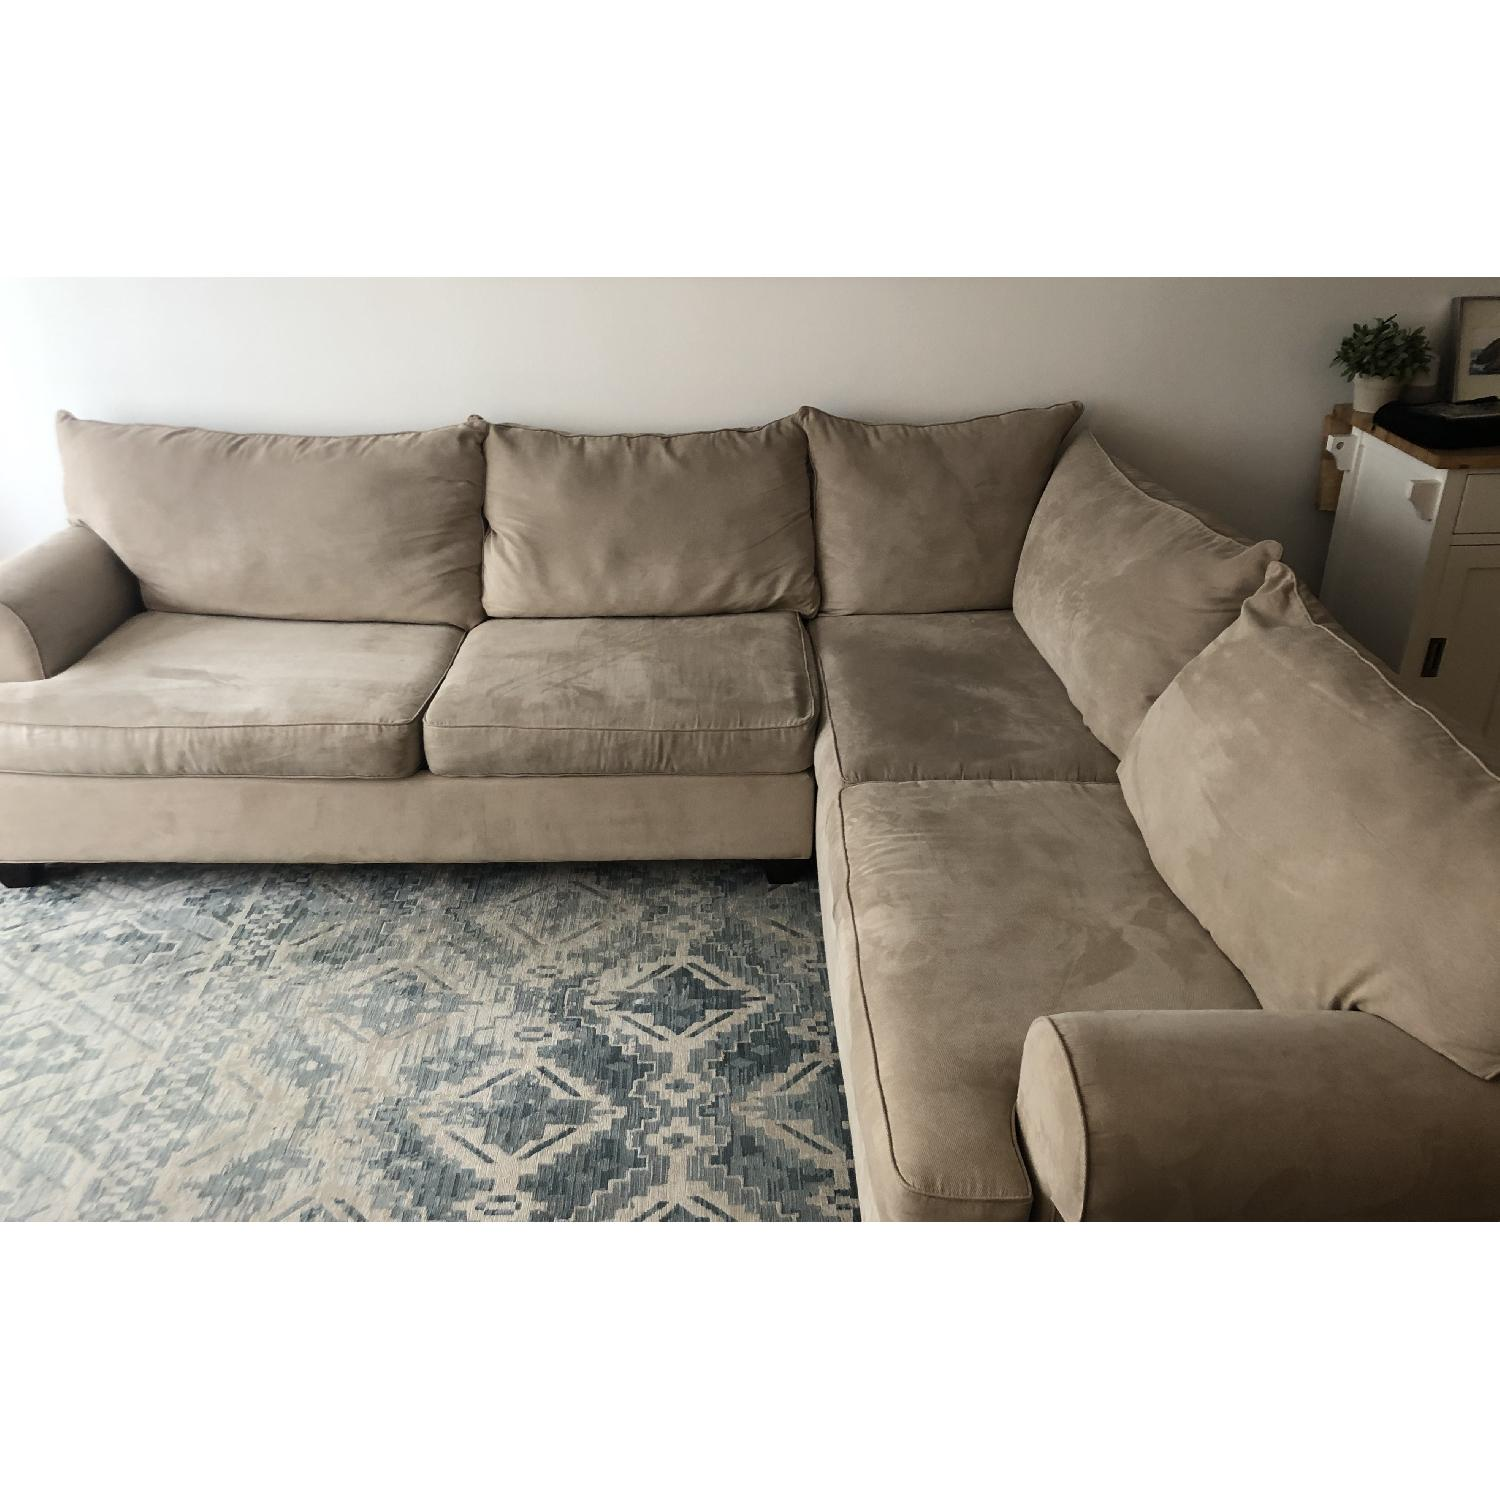 Raymour & Flanigan 2 Piece Stone Microfiber Sectional Sofa